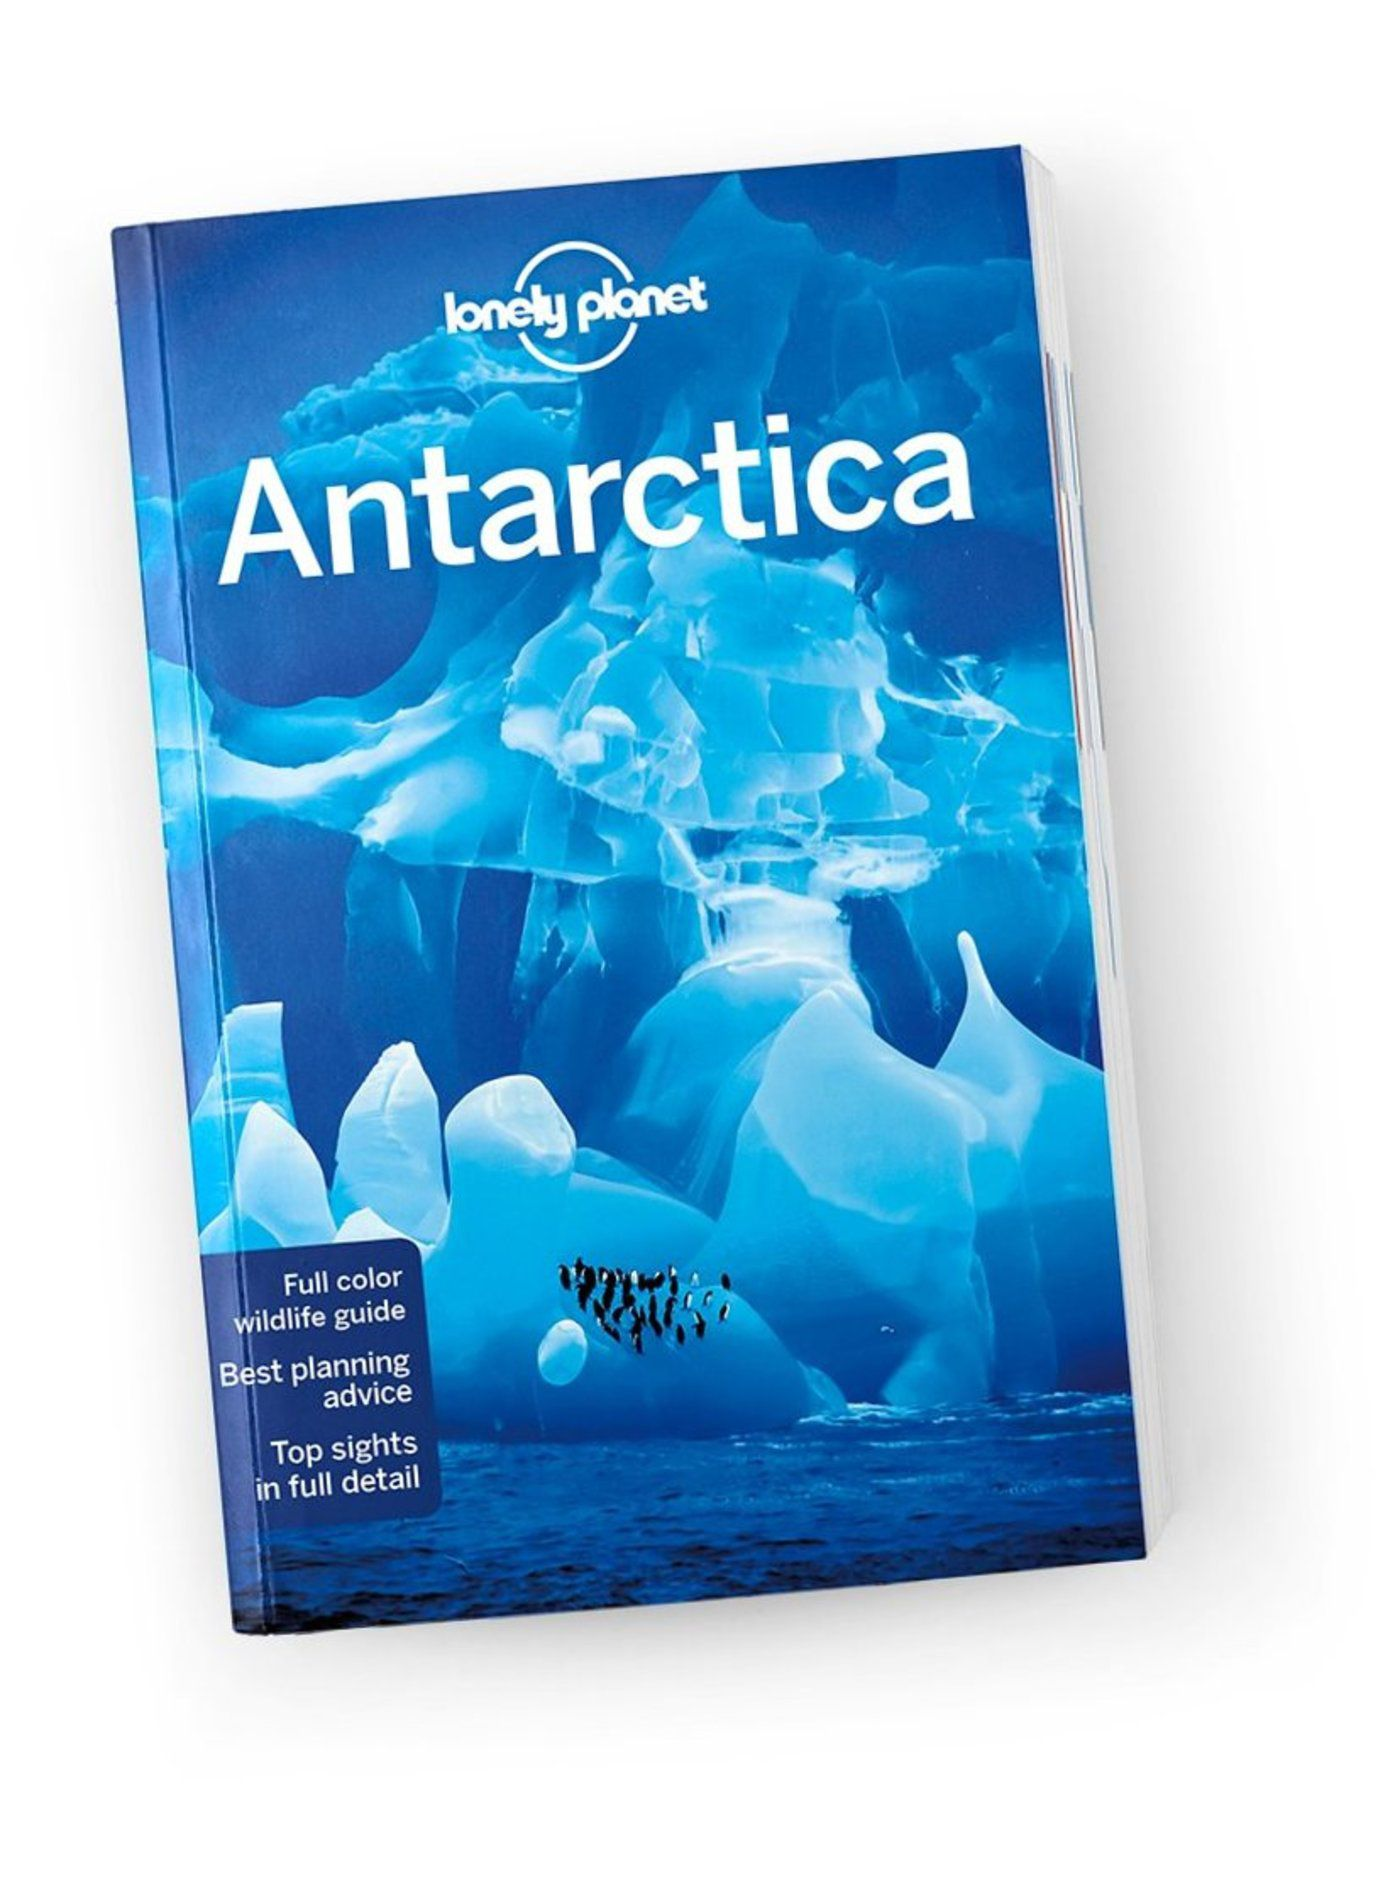 Antarctica travel guide